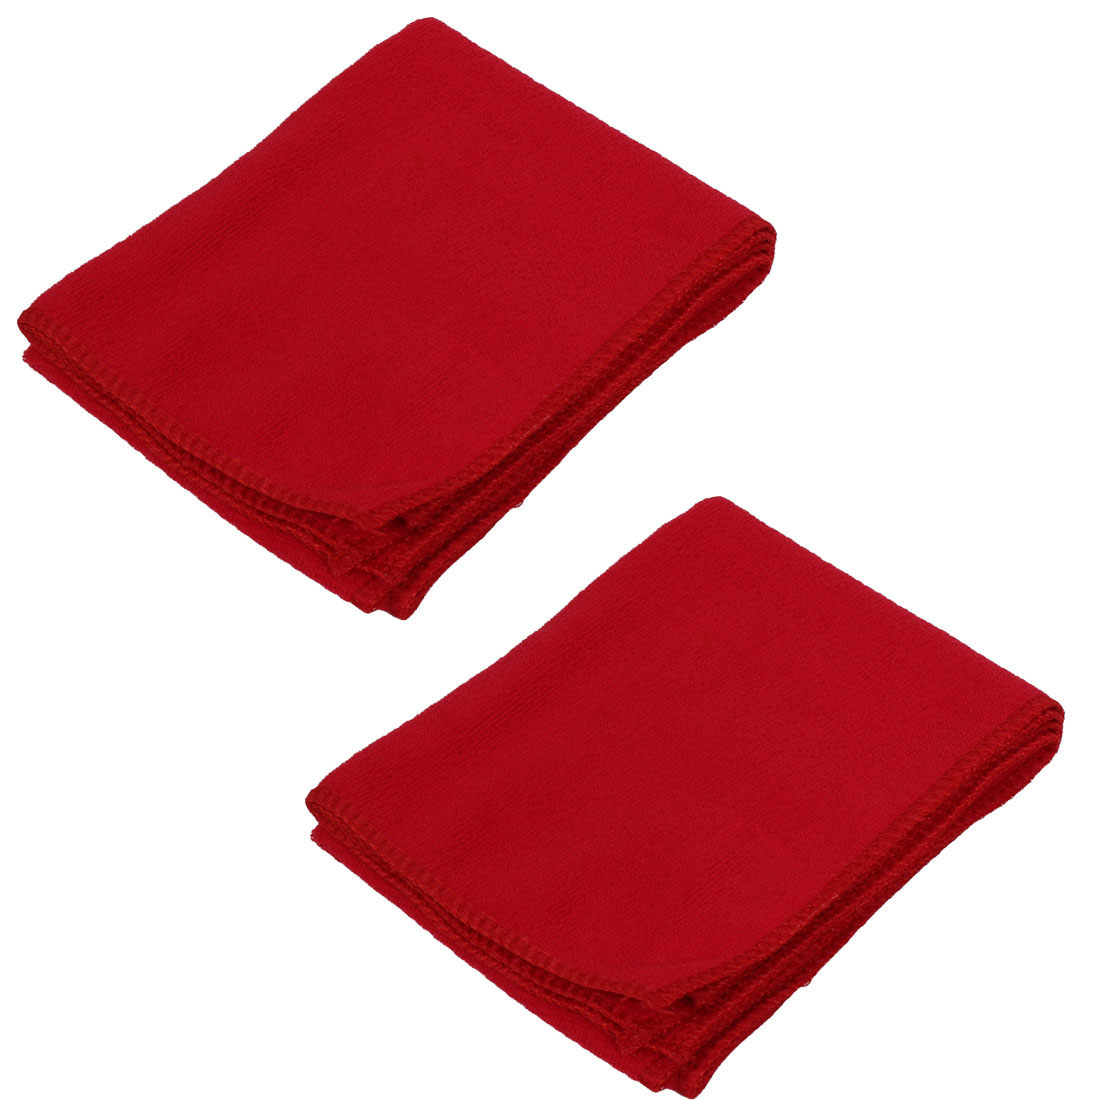 2pcs Red Microfiber Water Absorbent Car Cleaning Drying Towels Wash Clean Cloth